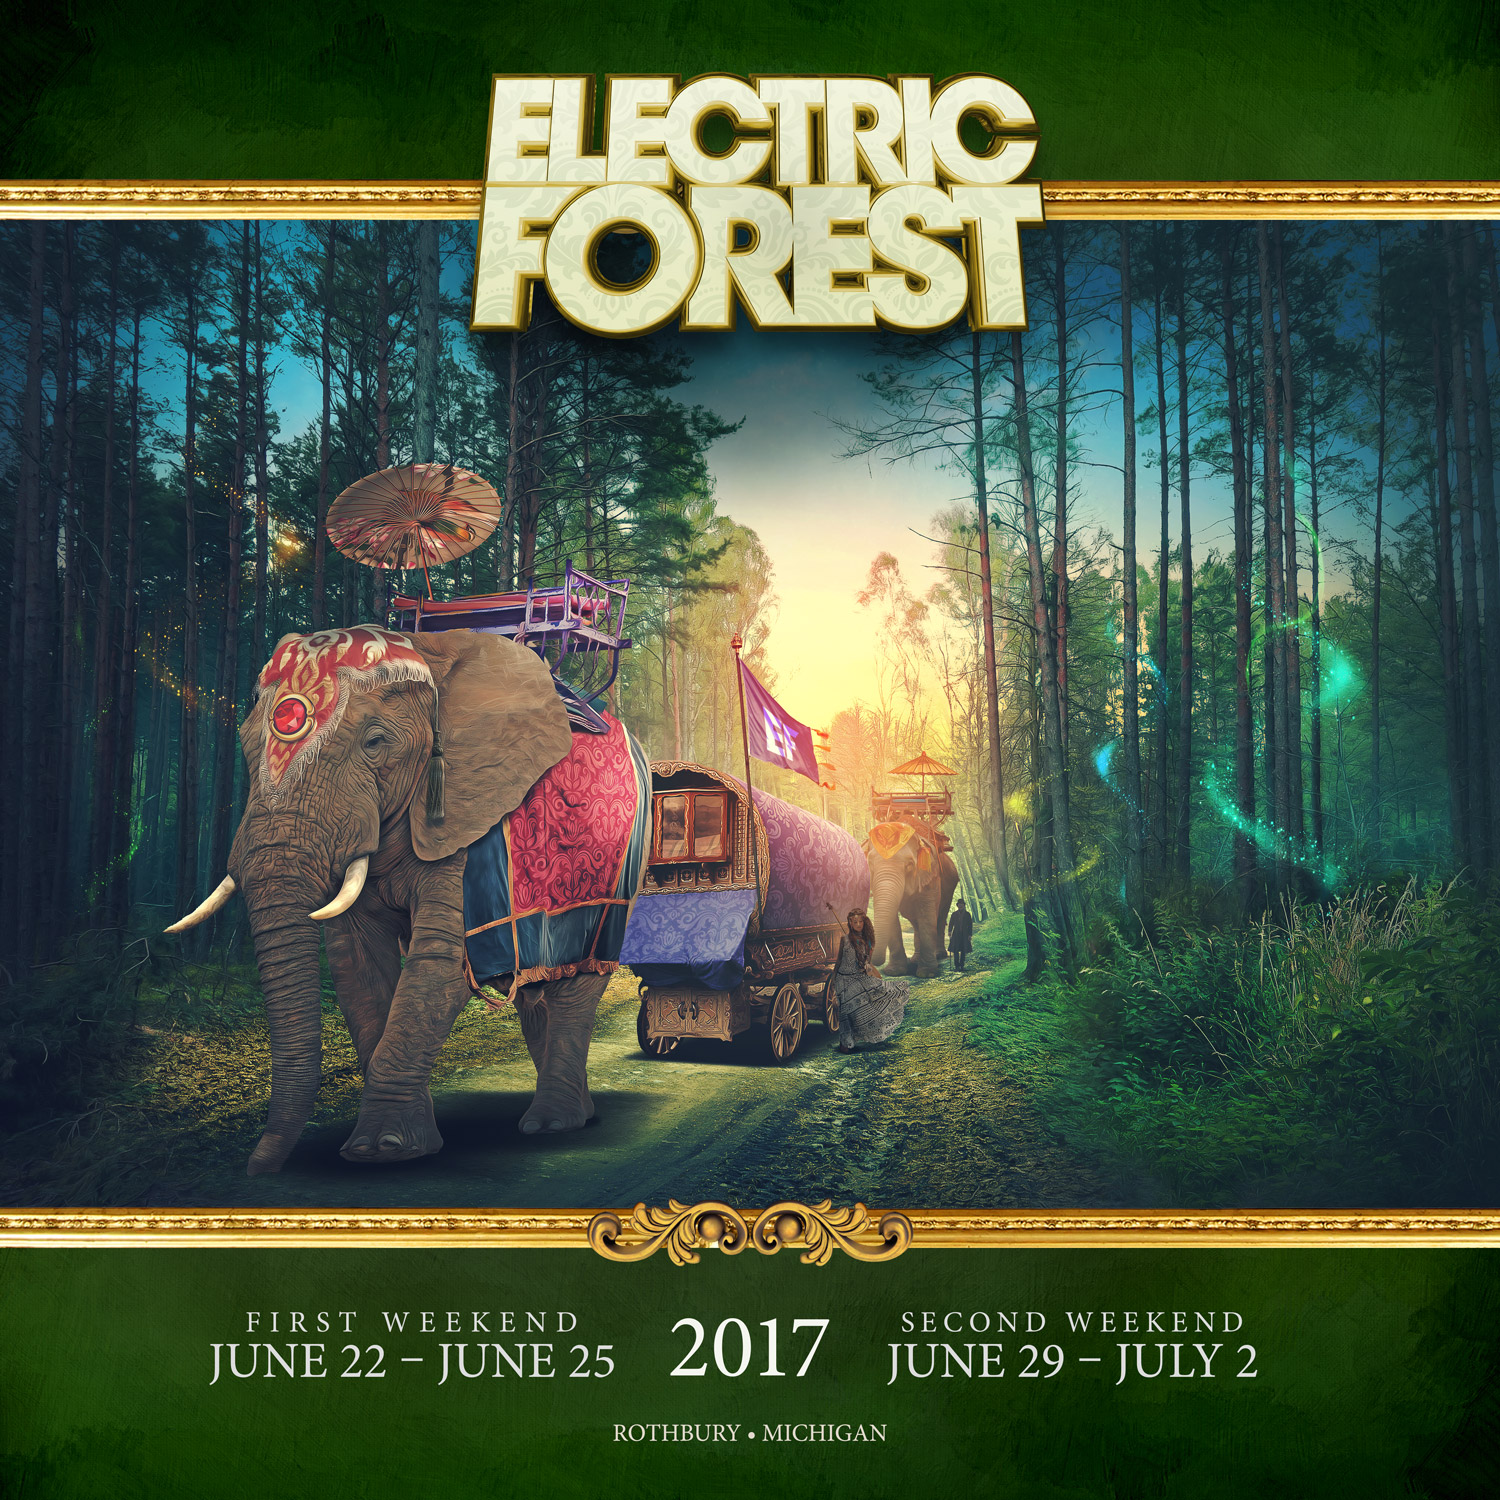 Electricforest2017 mainflyer 1500x1500 press